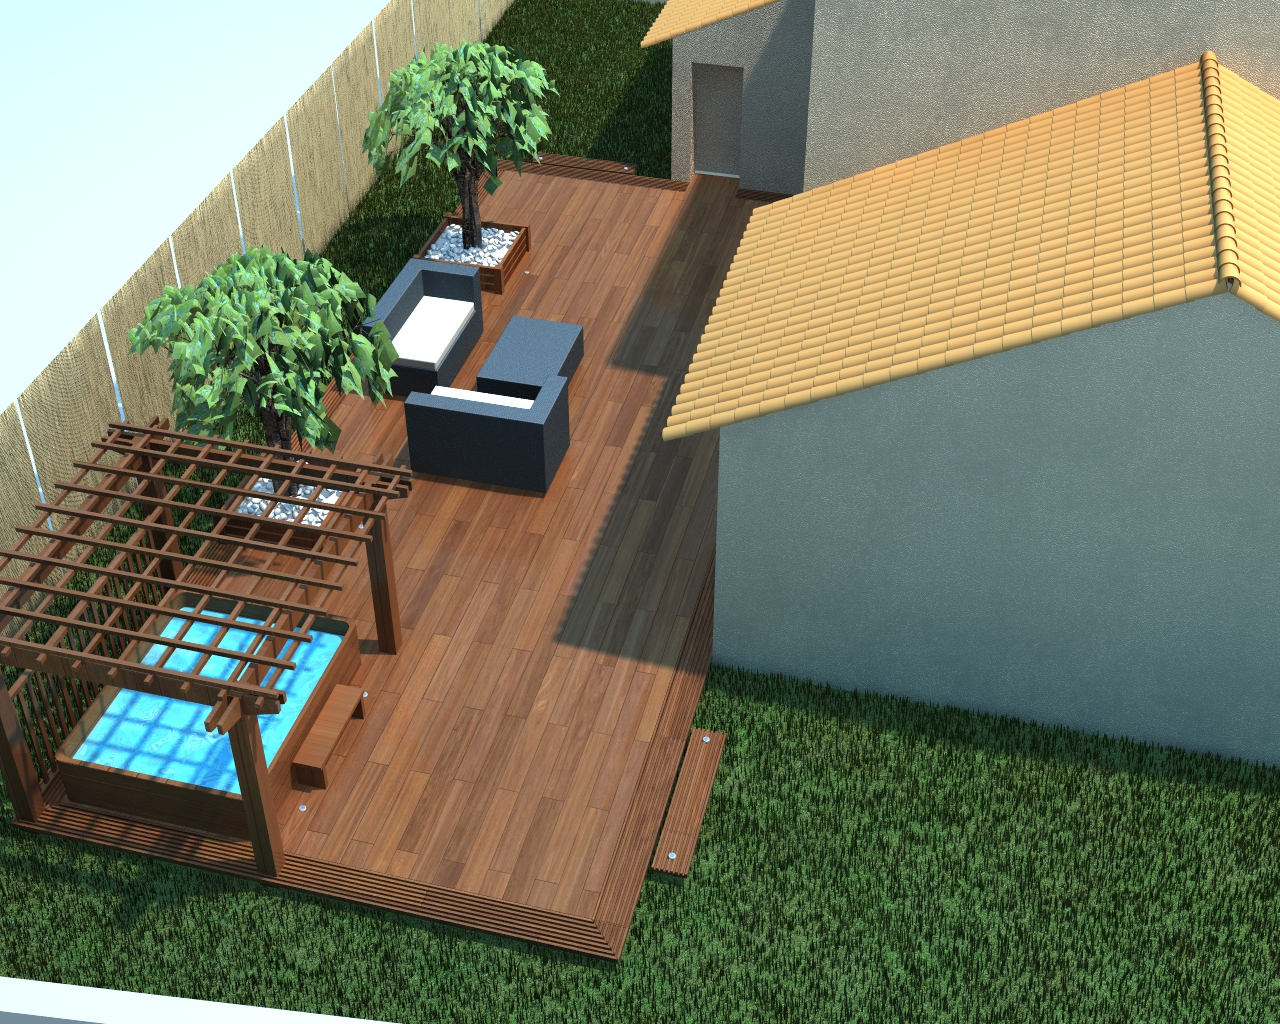 Conception terrasse et am nagement spa et salon de jardin for Amenagement de terrasse jardin